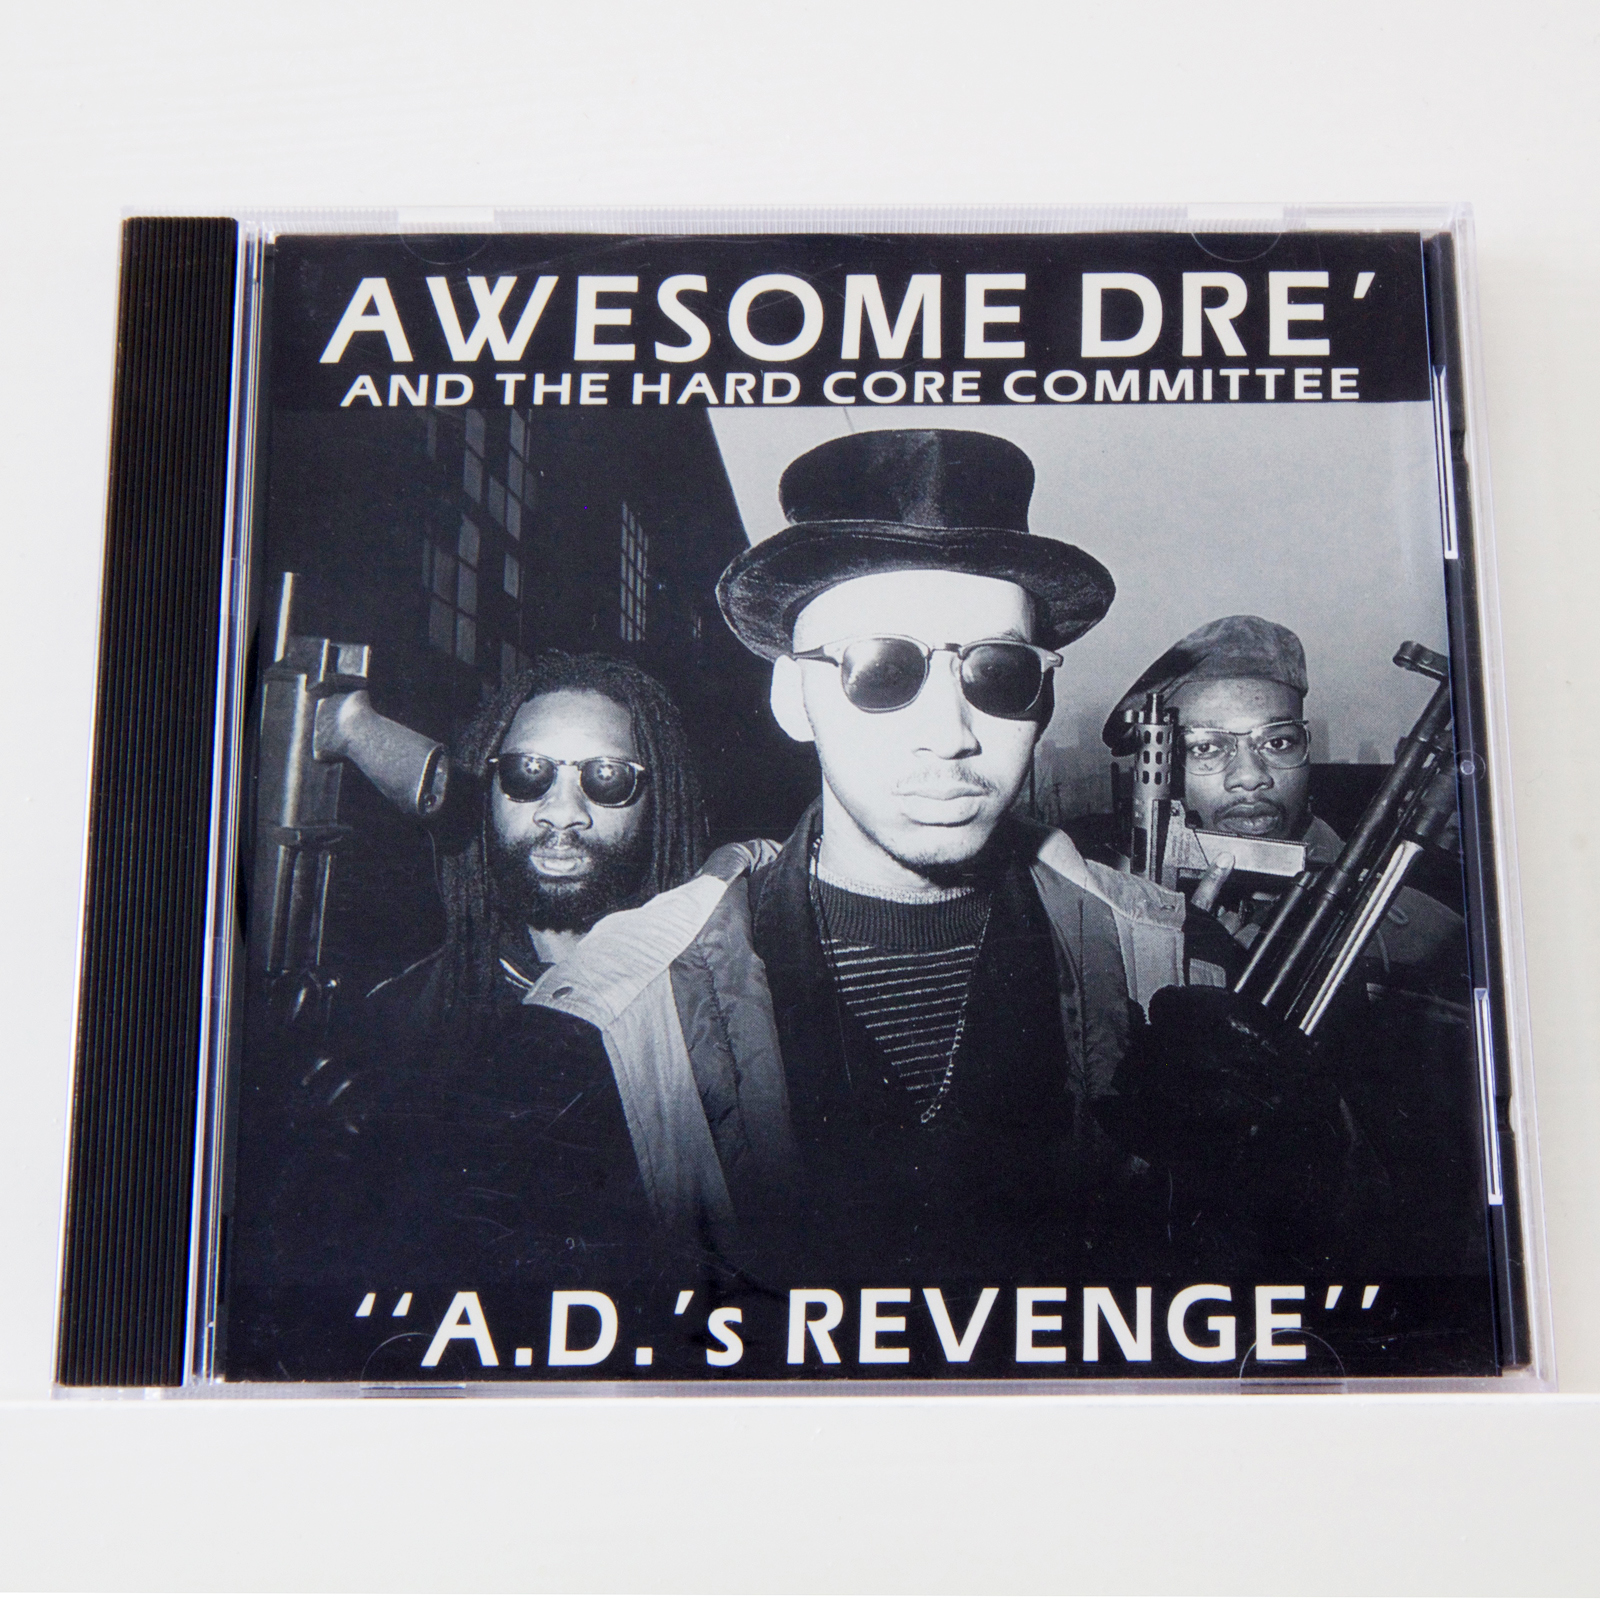 Awsome dre and the hardcore committe